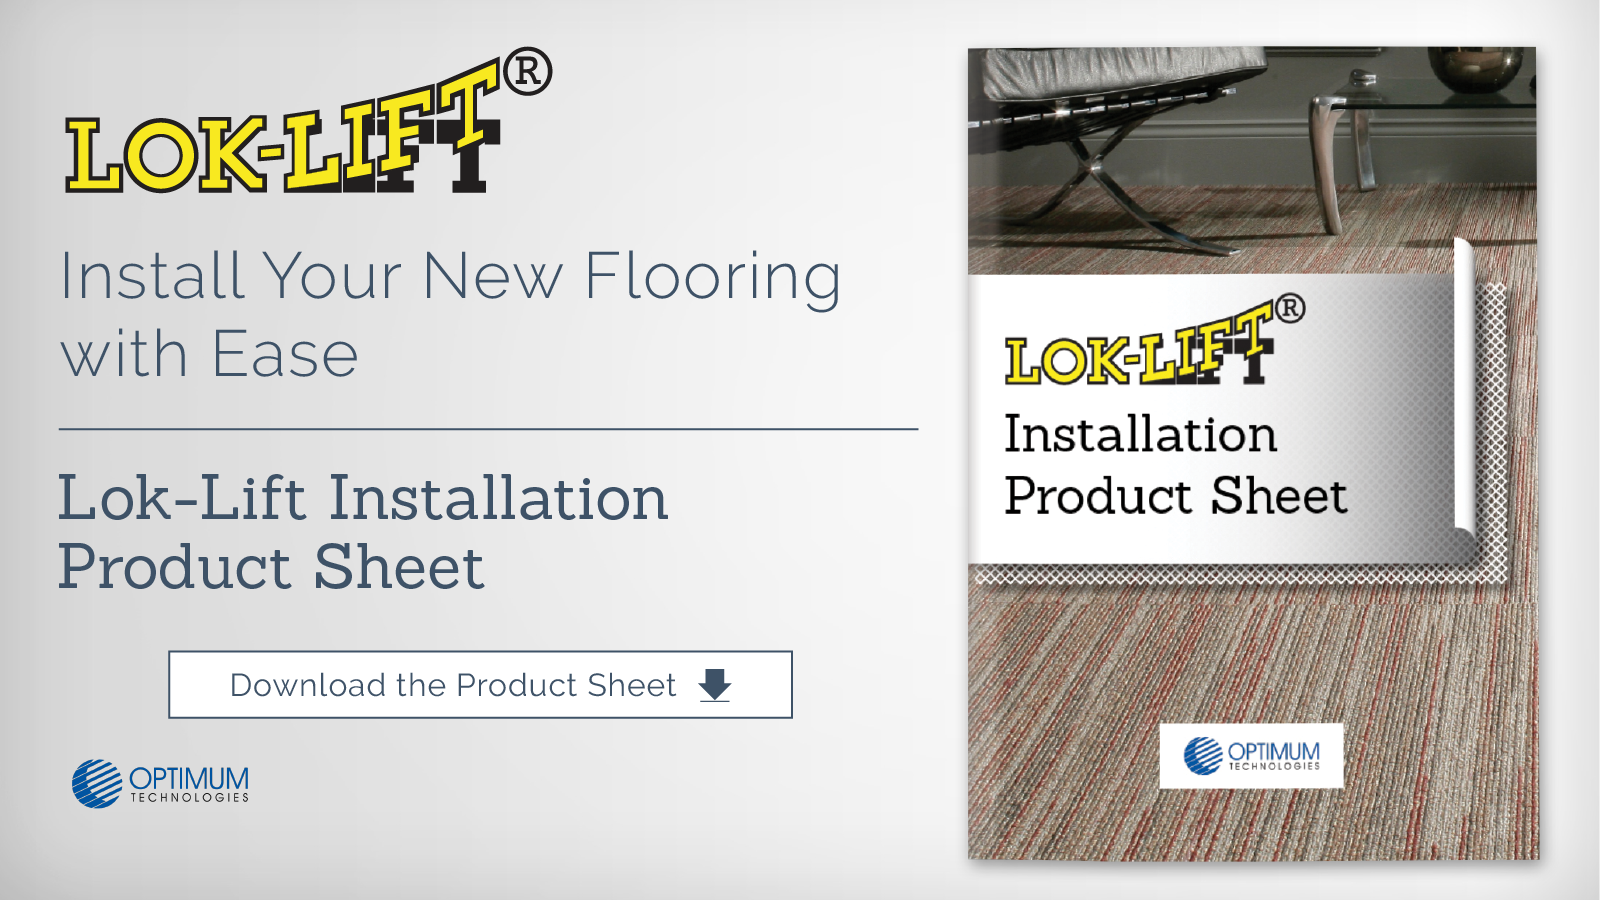 Lok-Lift Installation Product Sheet